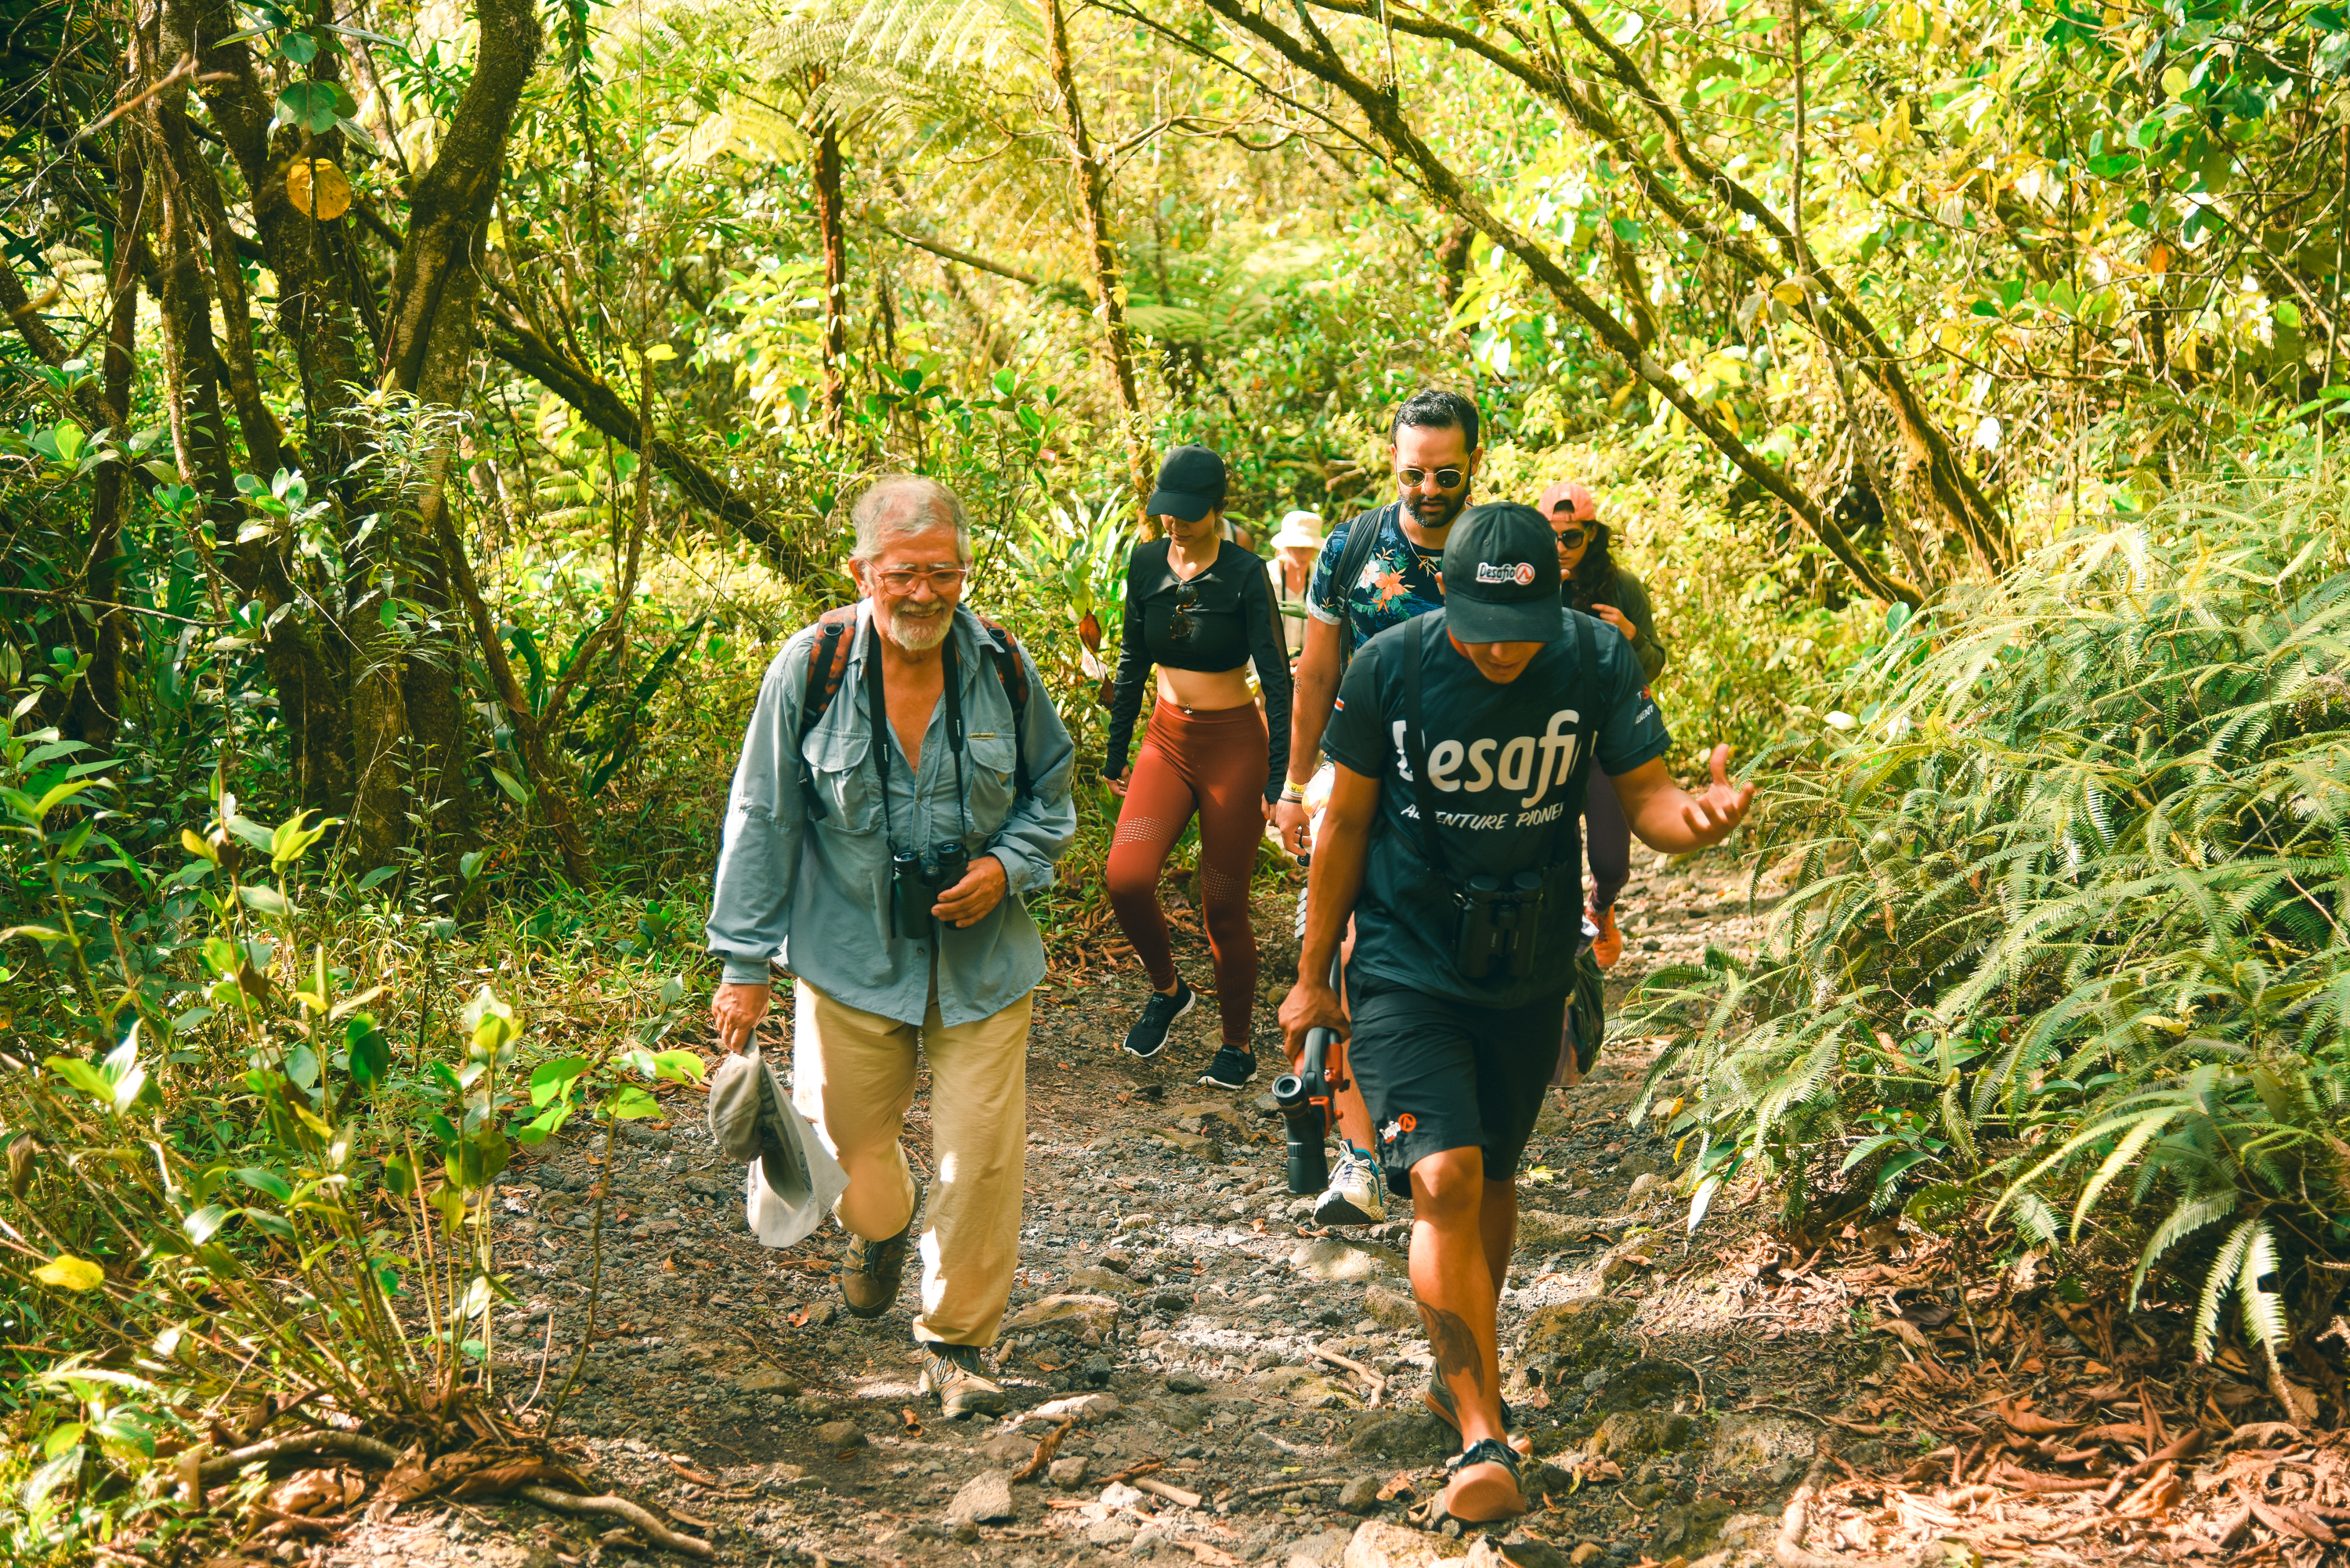 Explote the fascinating trails of the 1968 Volcano Park in Arenal!